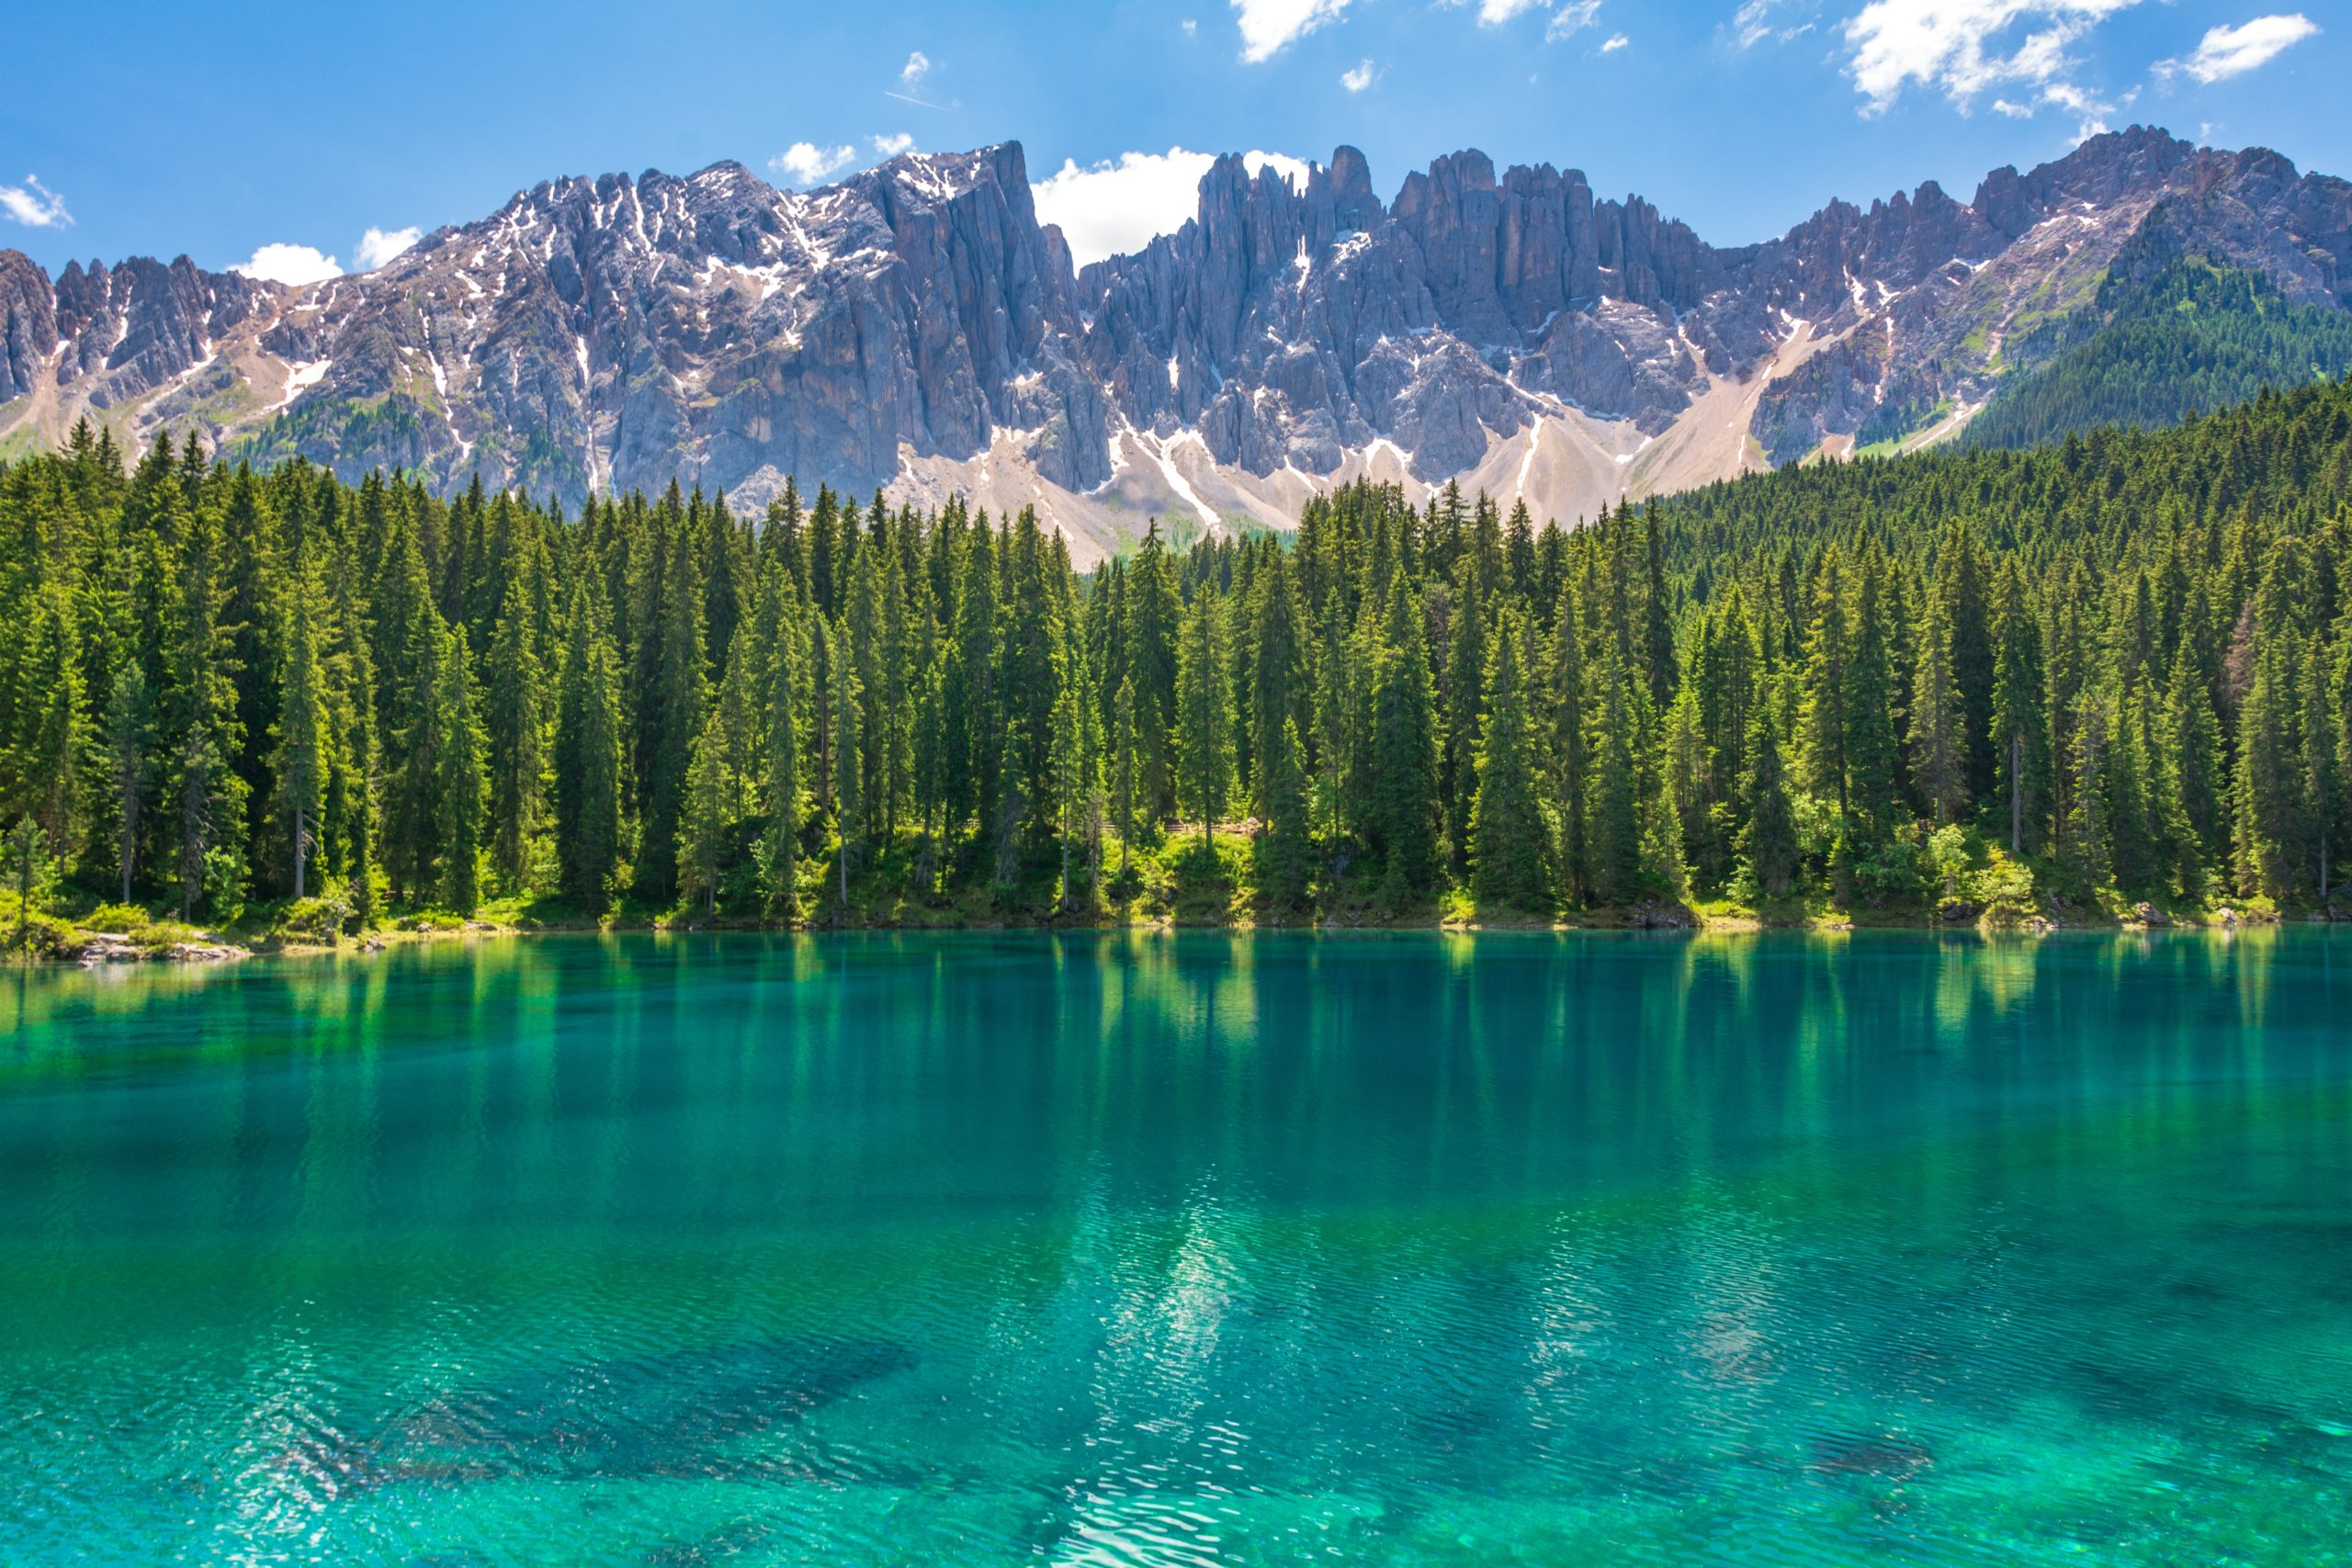 Climate Action Gateway header image of lake, trees and mountains